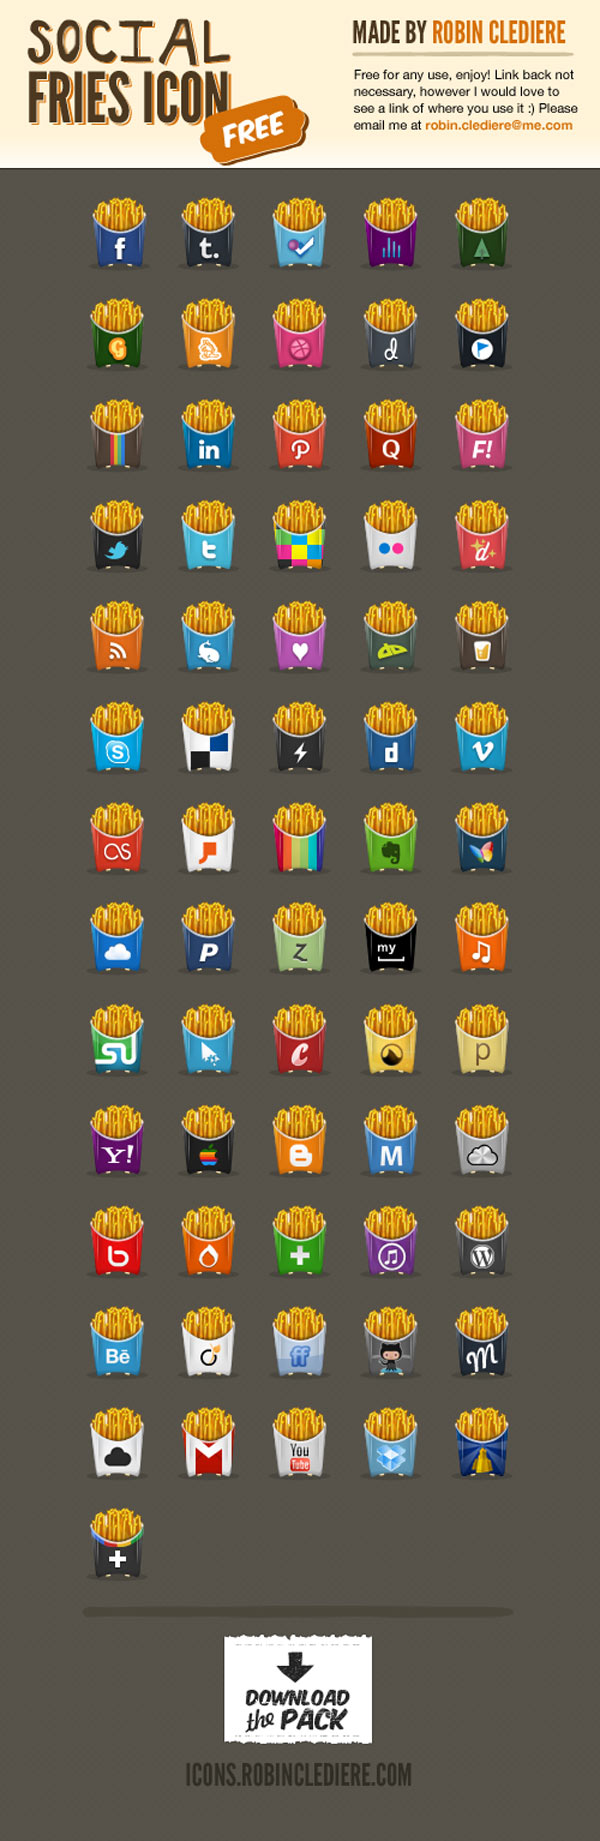 Fries social icons robinclediere